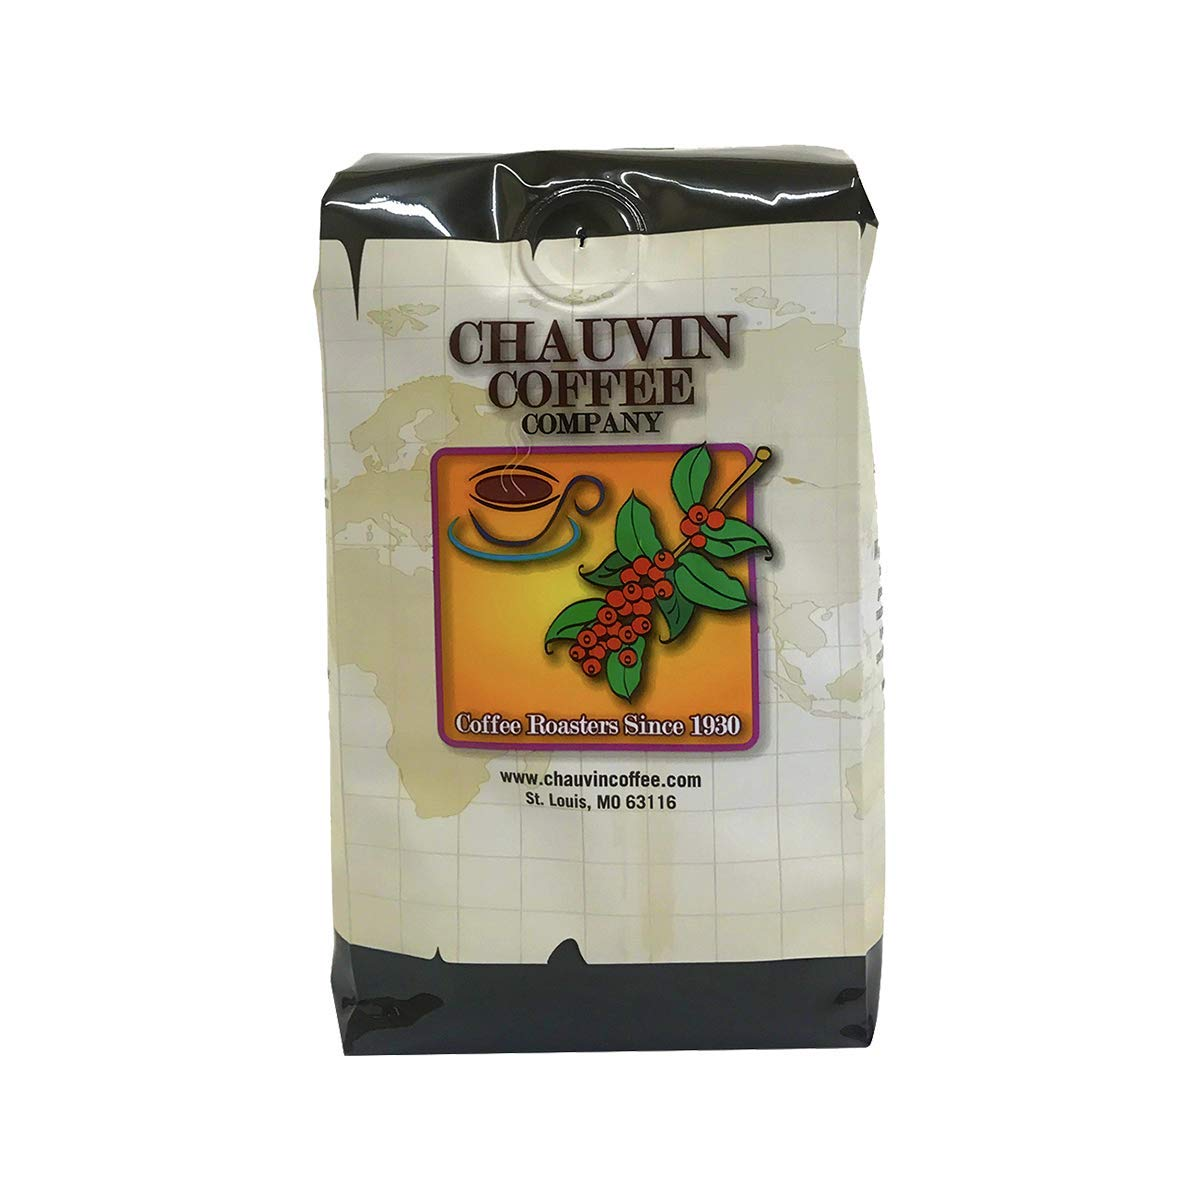 Chauvin Coffee Opening large release sale Max 52% OFF - Bourbon Pecan Decaf 1lb Whole Bean